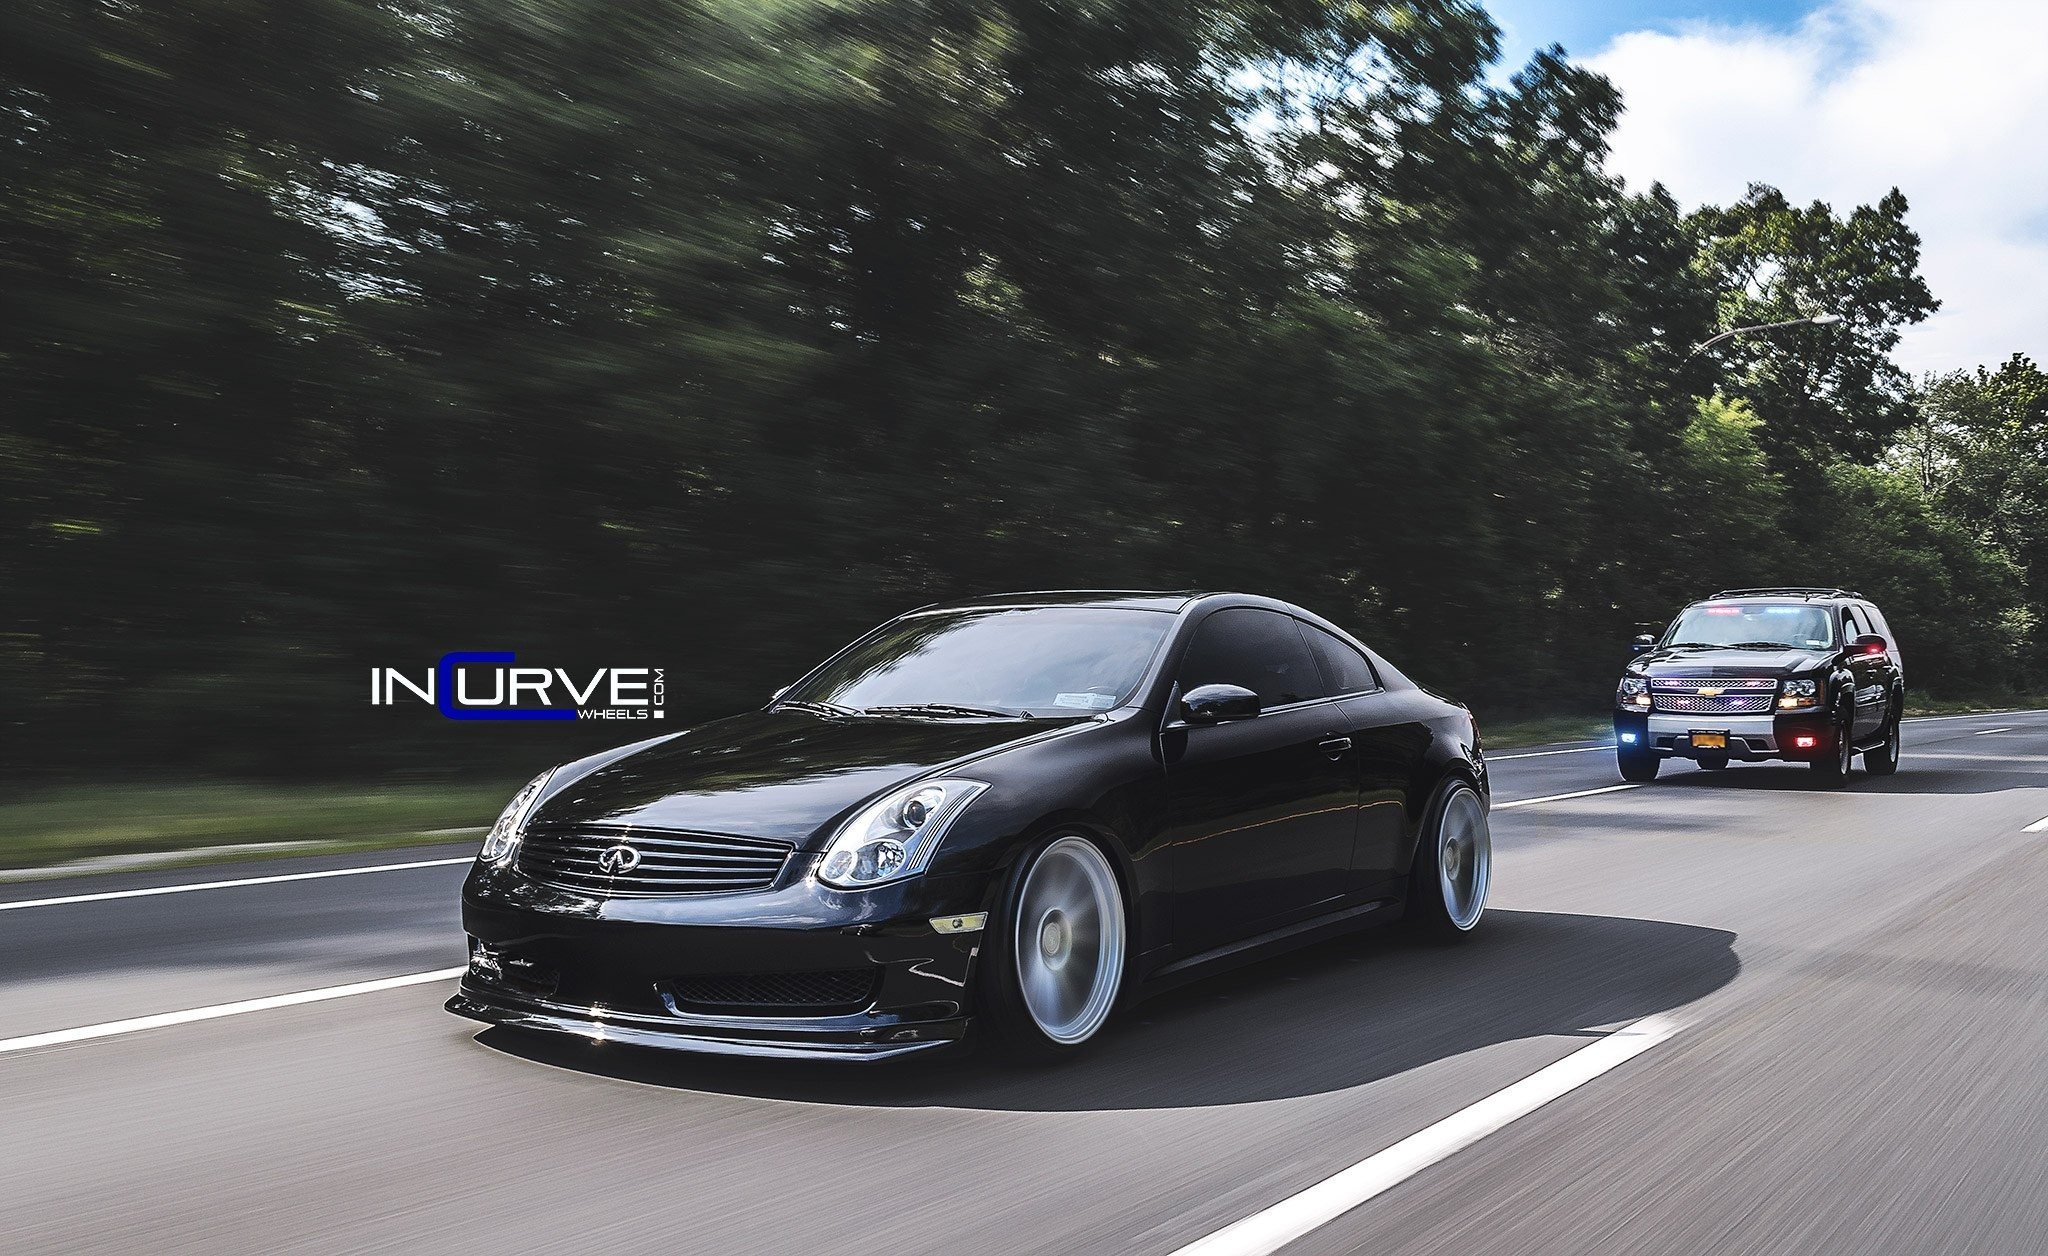 2015 Incurve Wheels cars tuning Infiniti G35 coupe wallpaper      635839   WallpaperUP